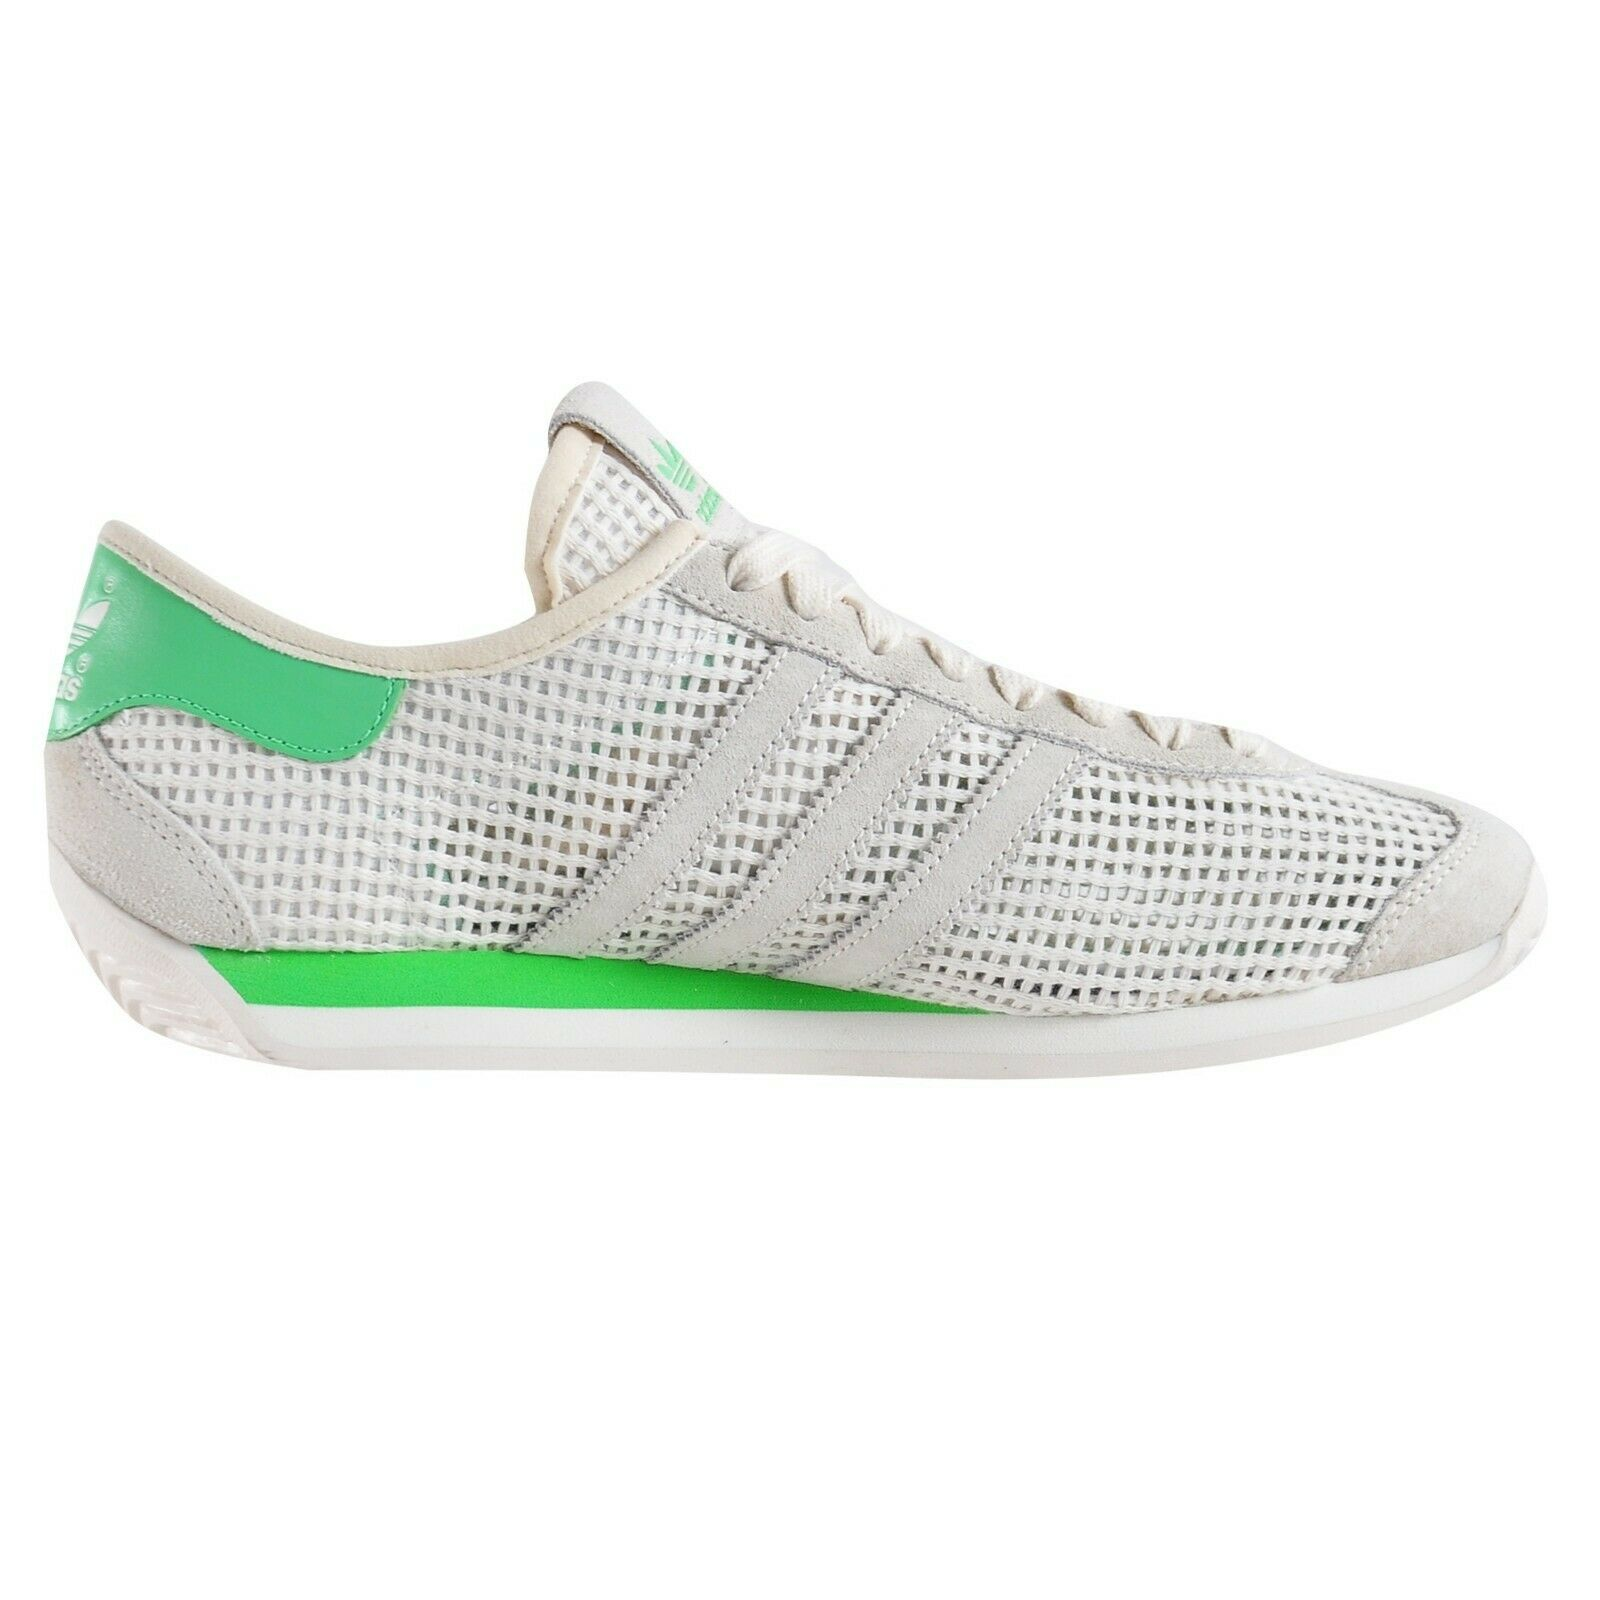 Adidas Originals Country Summer Mens Trainers Deadstock schuhe Größes UK UK UK 8 9 10 11 bbc1ee